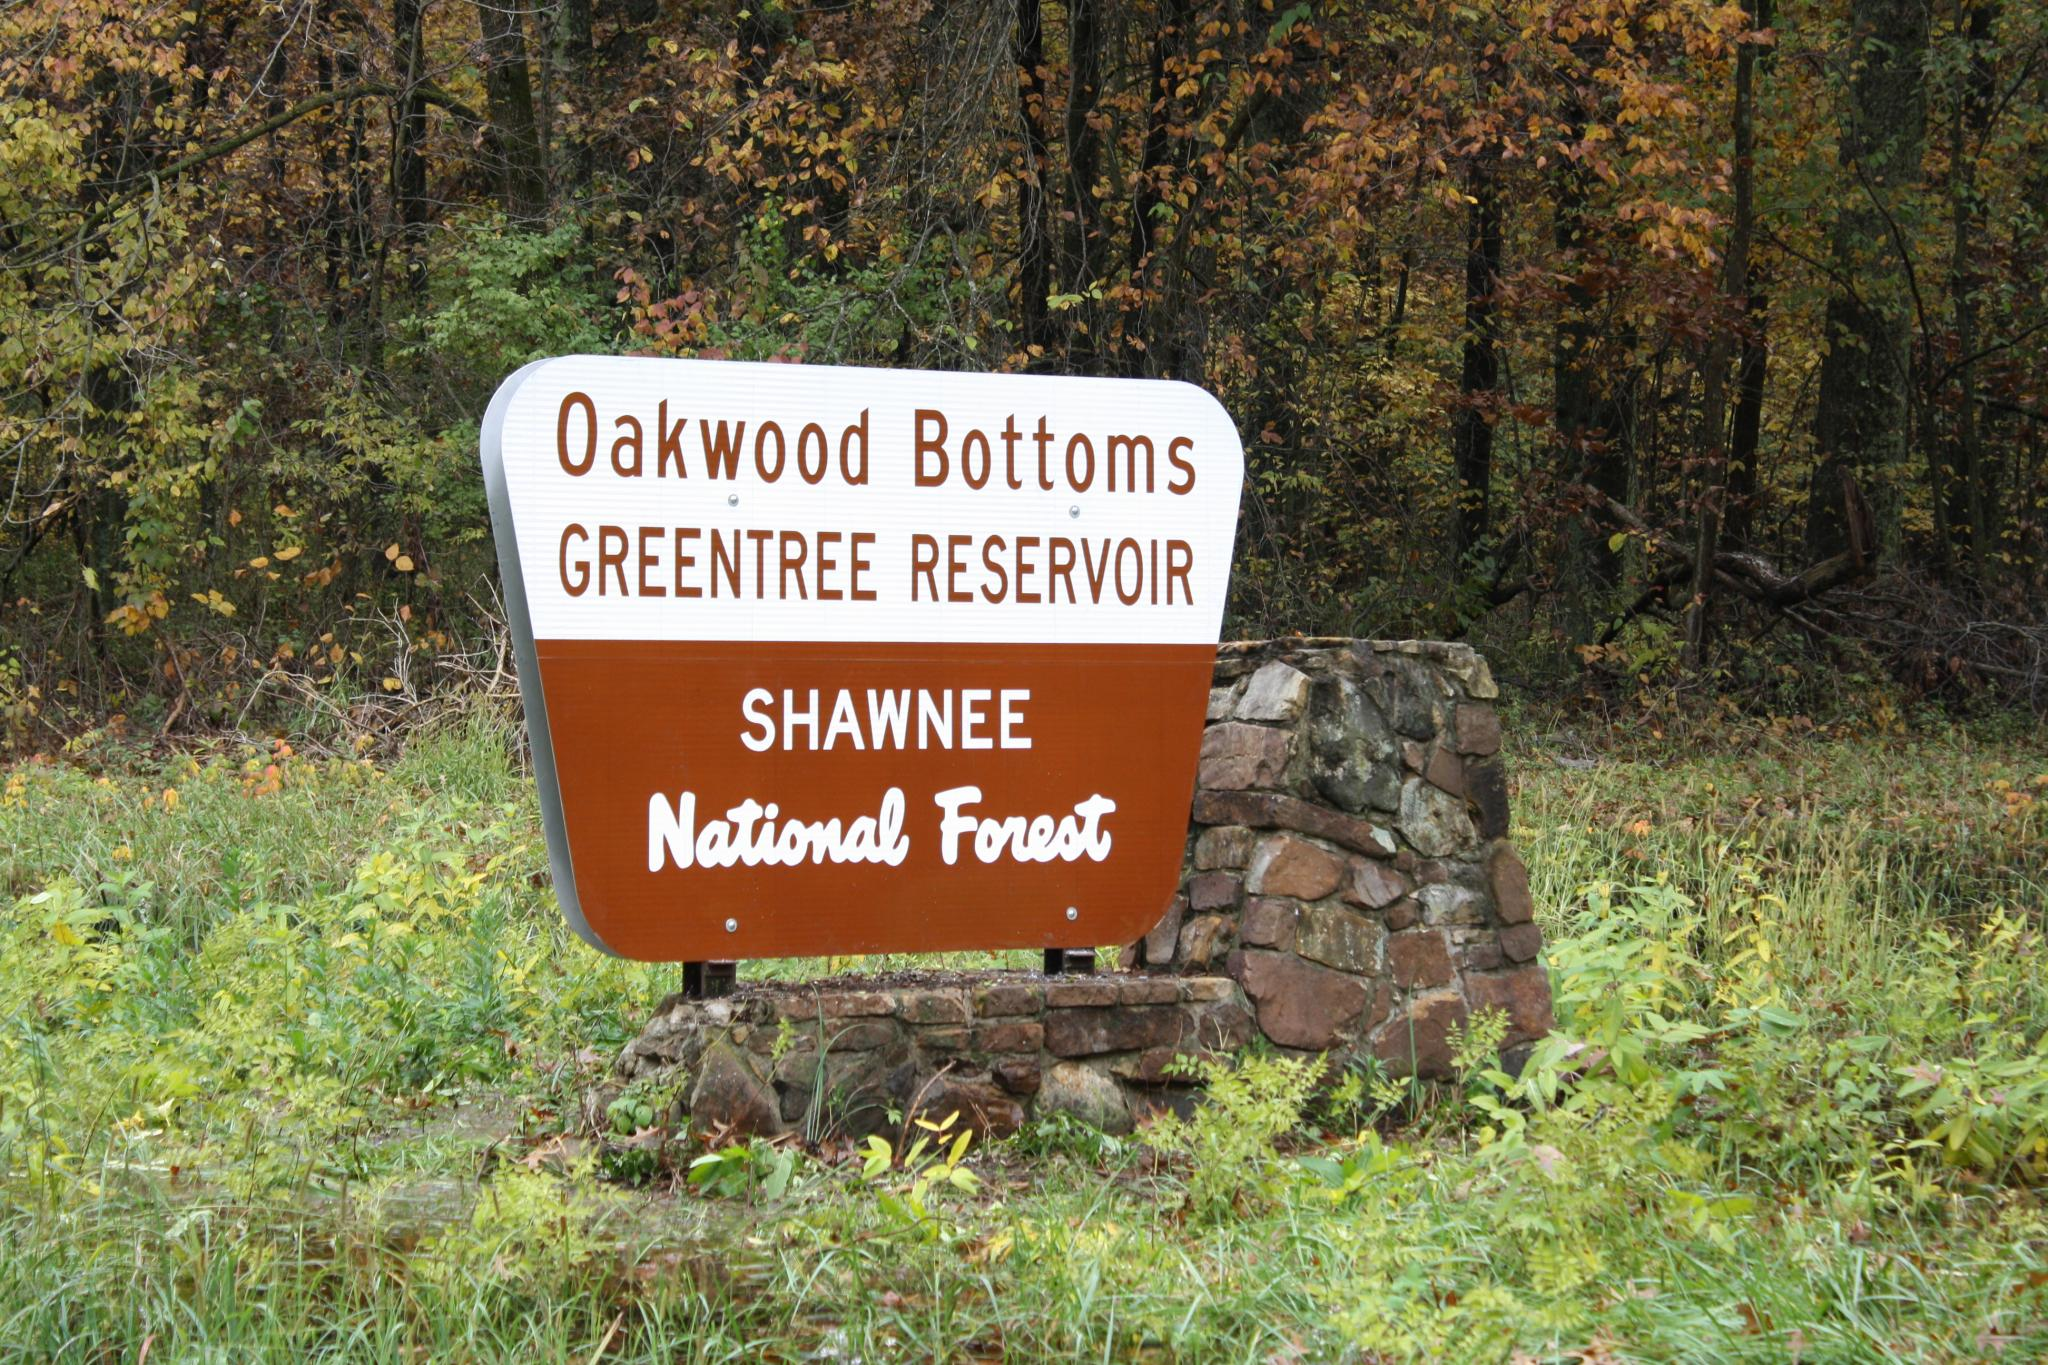 Oakwood Bottoms Greentree Reservoir Entrance sign. White on top brown on bottom.  surrounded by green grass.